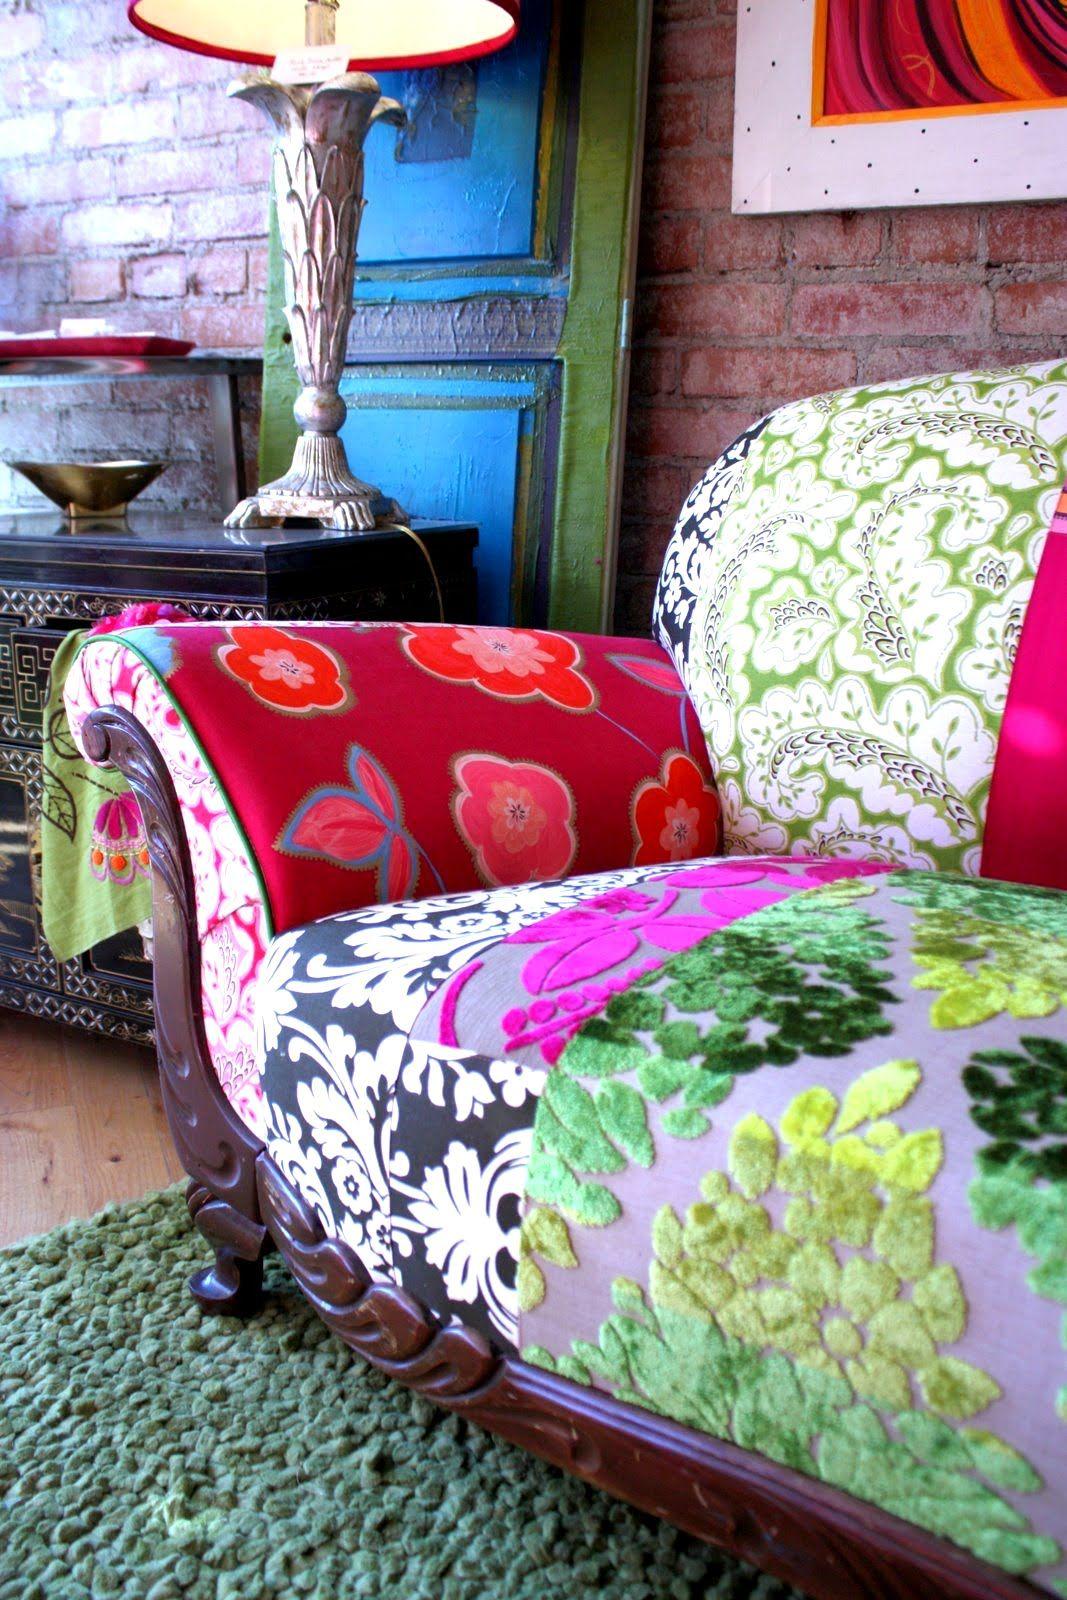 Fauteuil Bergere Ikea Repurposed Quilted 1920's Vintage Couch From Designers